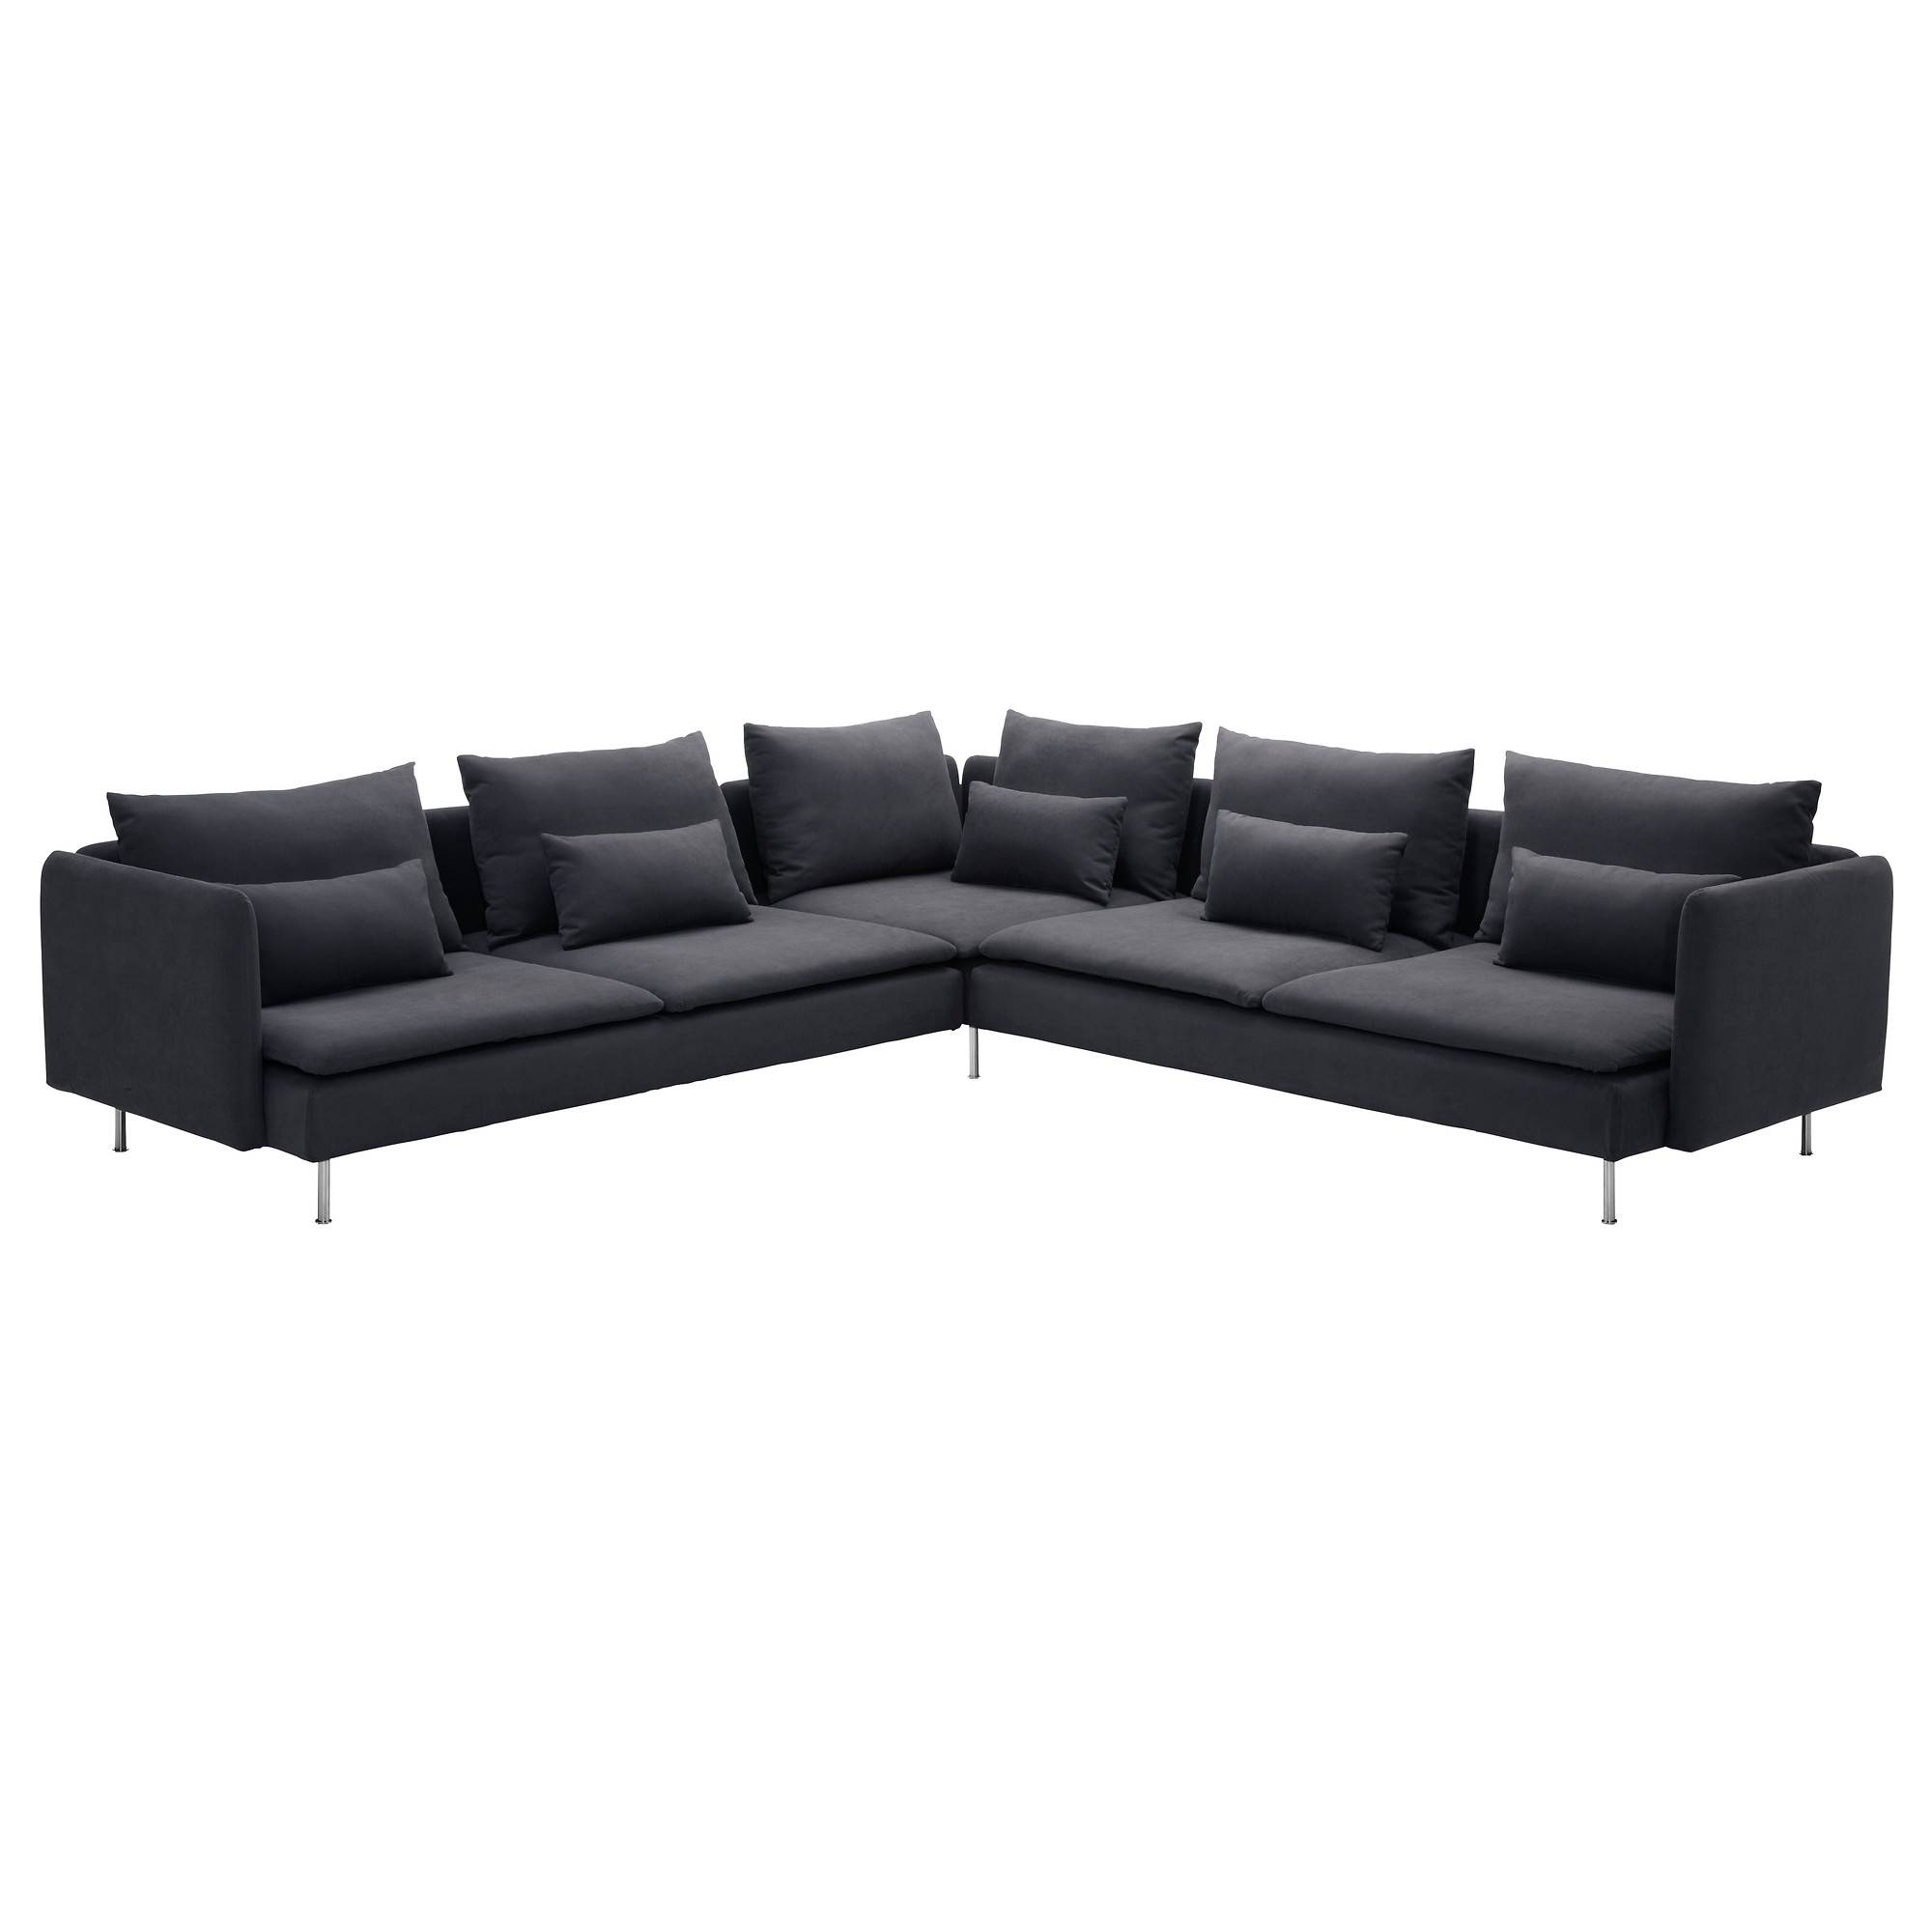 Fabric Sectional Sofas - Ikea pertaining to 2X2 Corner Sofas (Image 11 of 30)